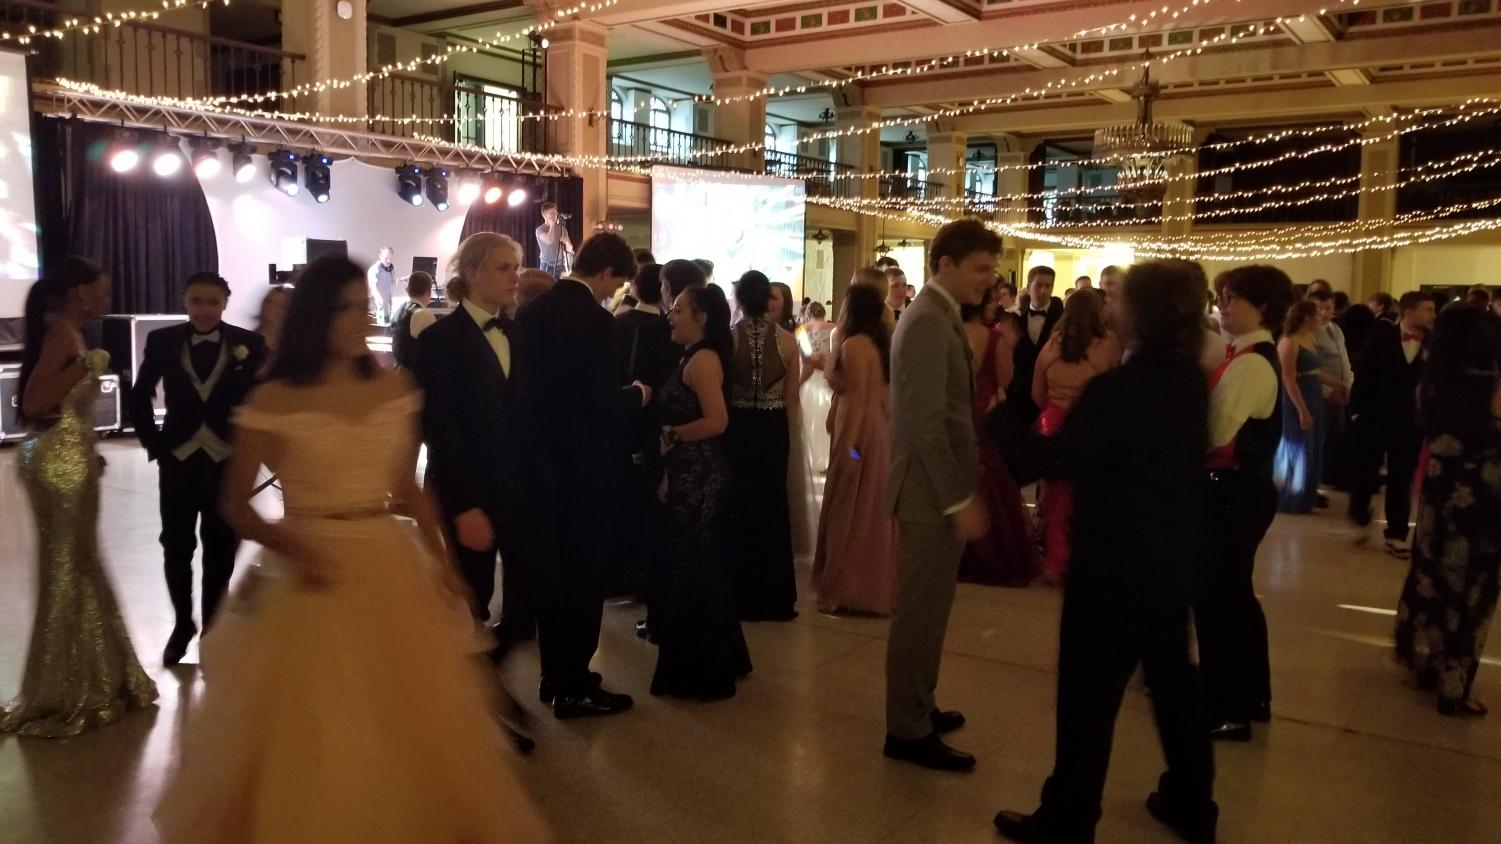 Students+on+the+dance+floor+at+prom+2019